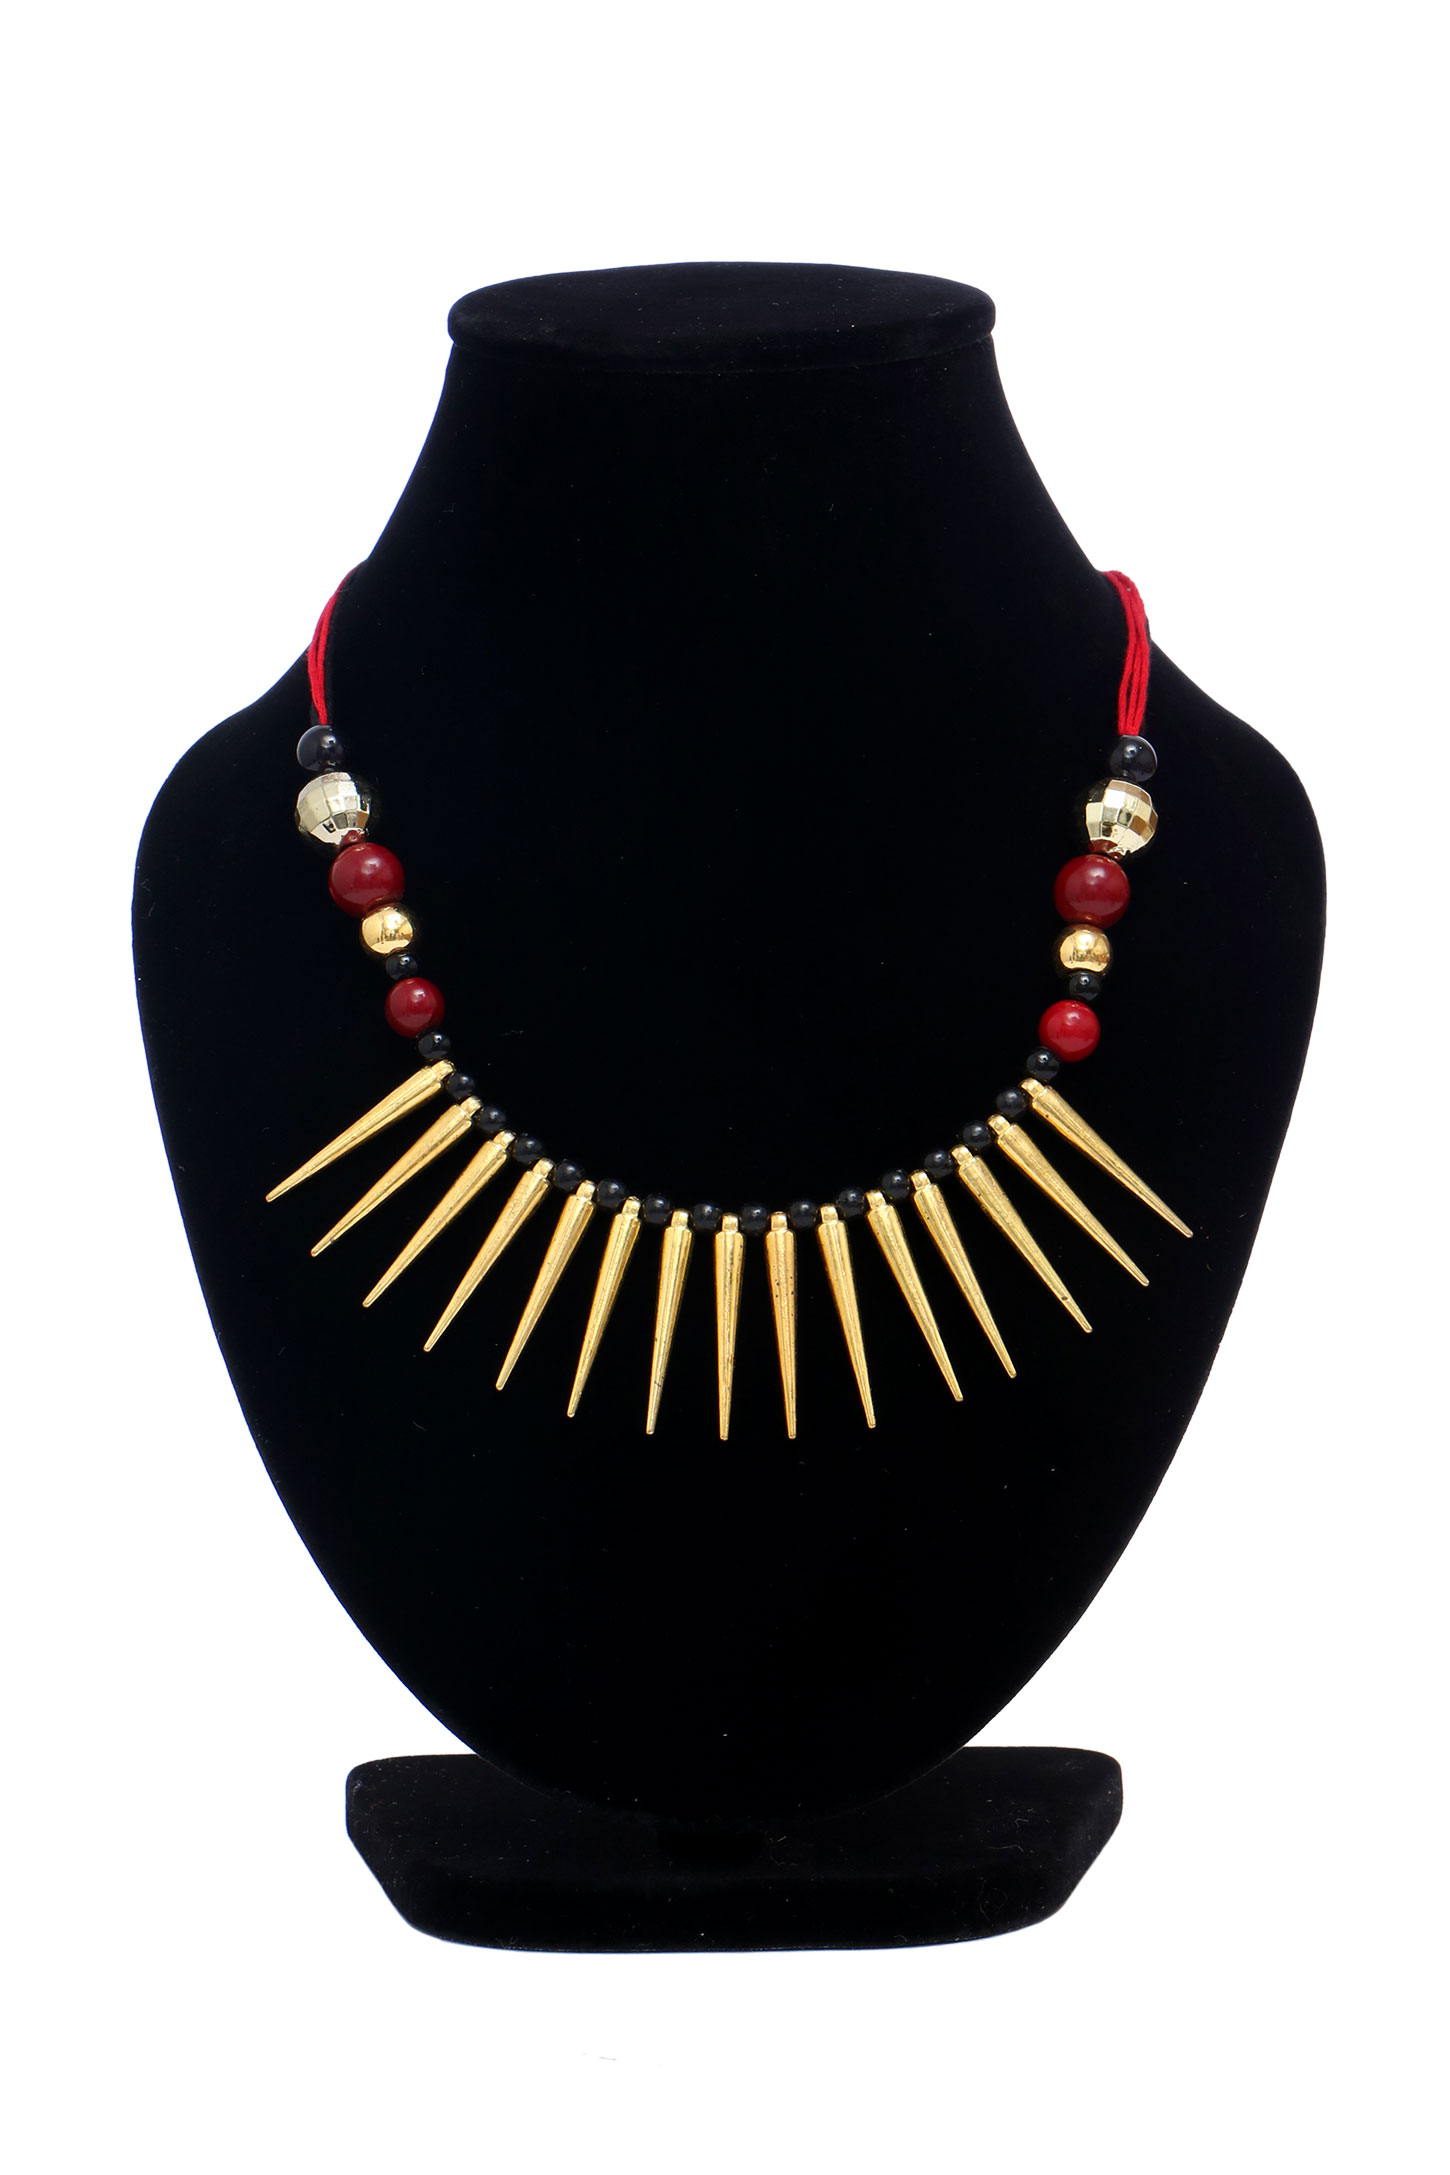 this art crimson indian pin marble gets traditional necklace neckpiece makeover a in